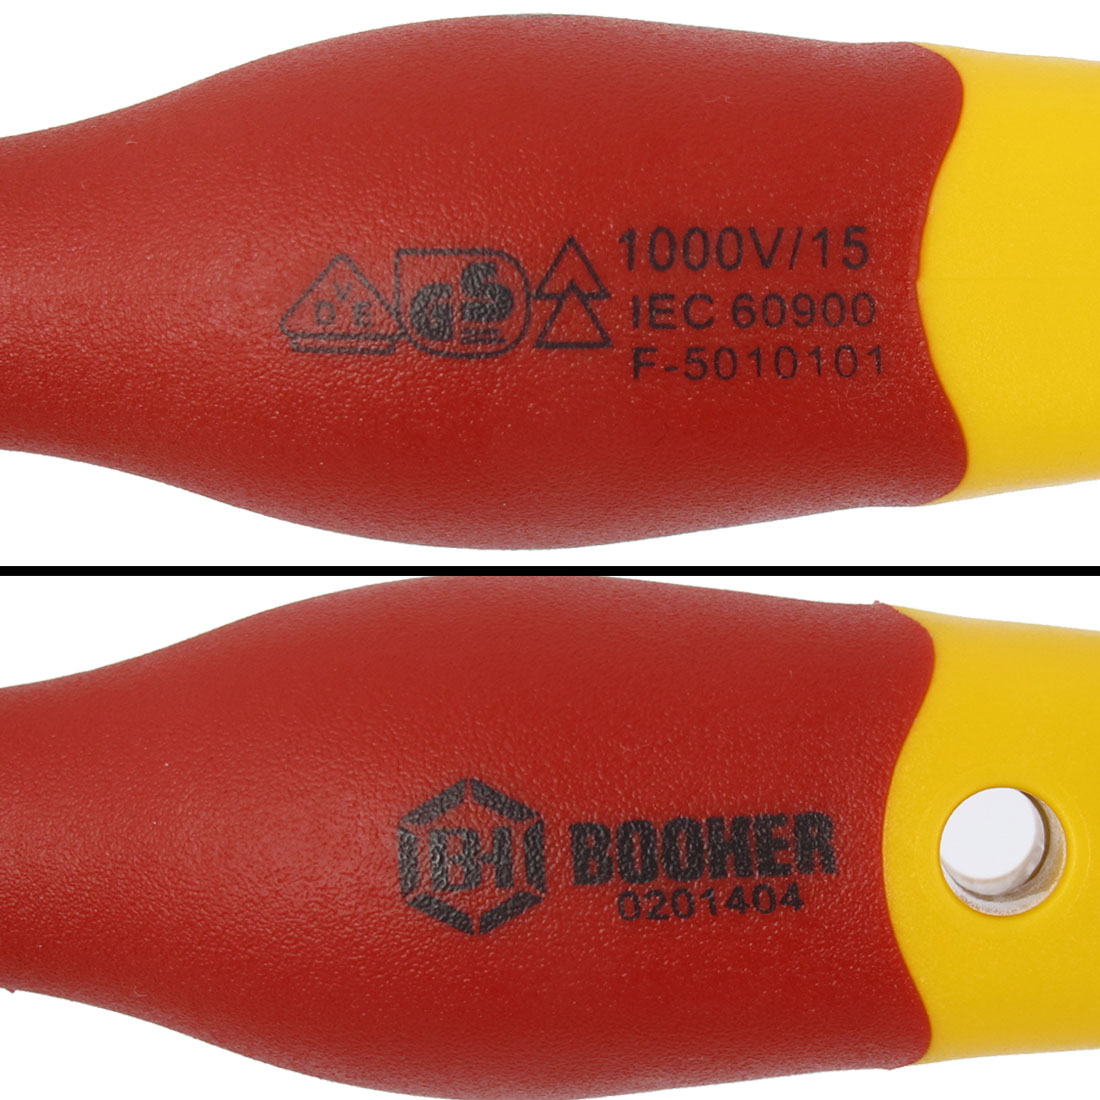 BOOHER Authorized 1000V 4mm Tip Width VDE Insulated Slotted Screwdriver - image 4 of 7